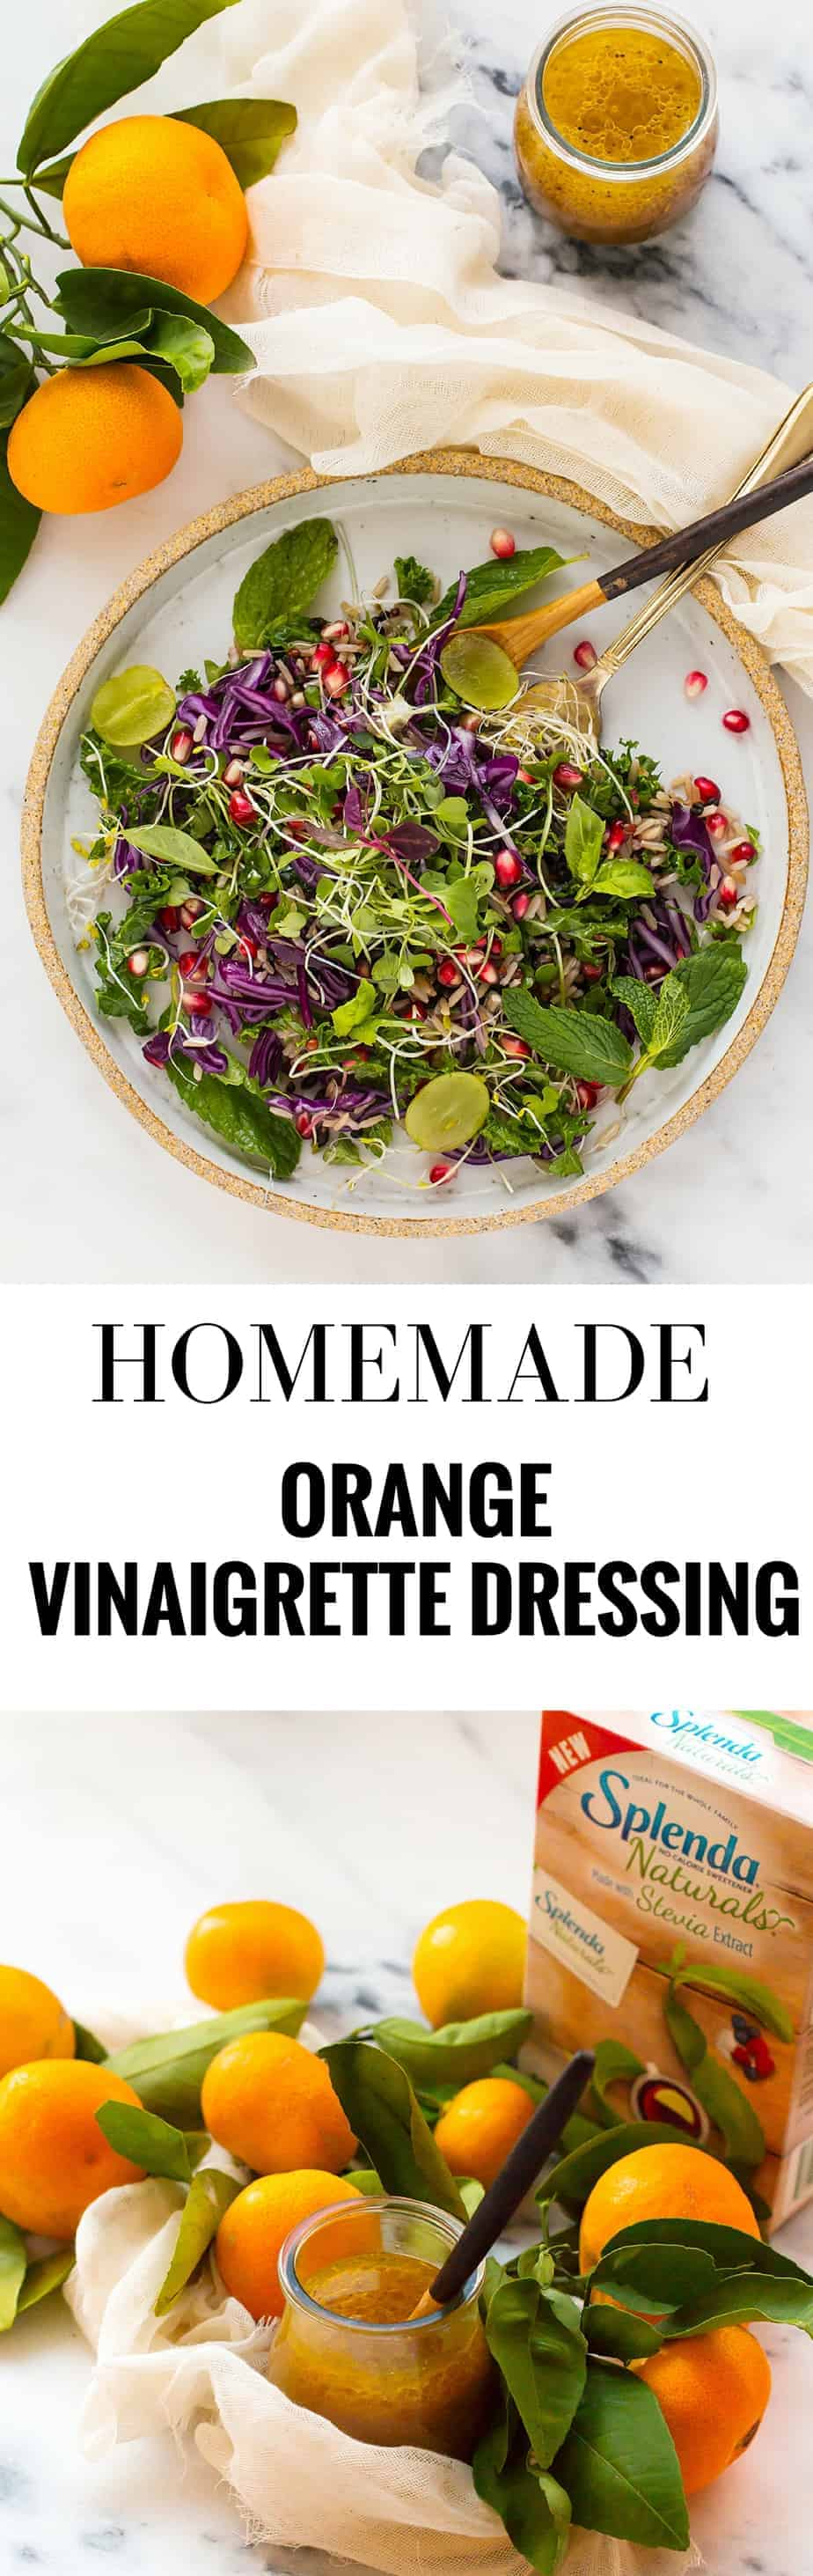 fall-salad-orange-vinaigrette-dressing. LOW CARB DRESSING WITH STEVIA